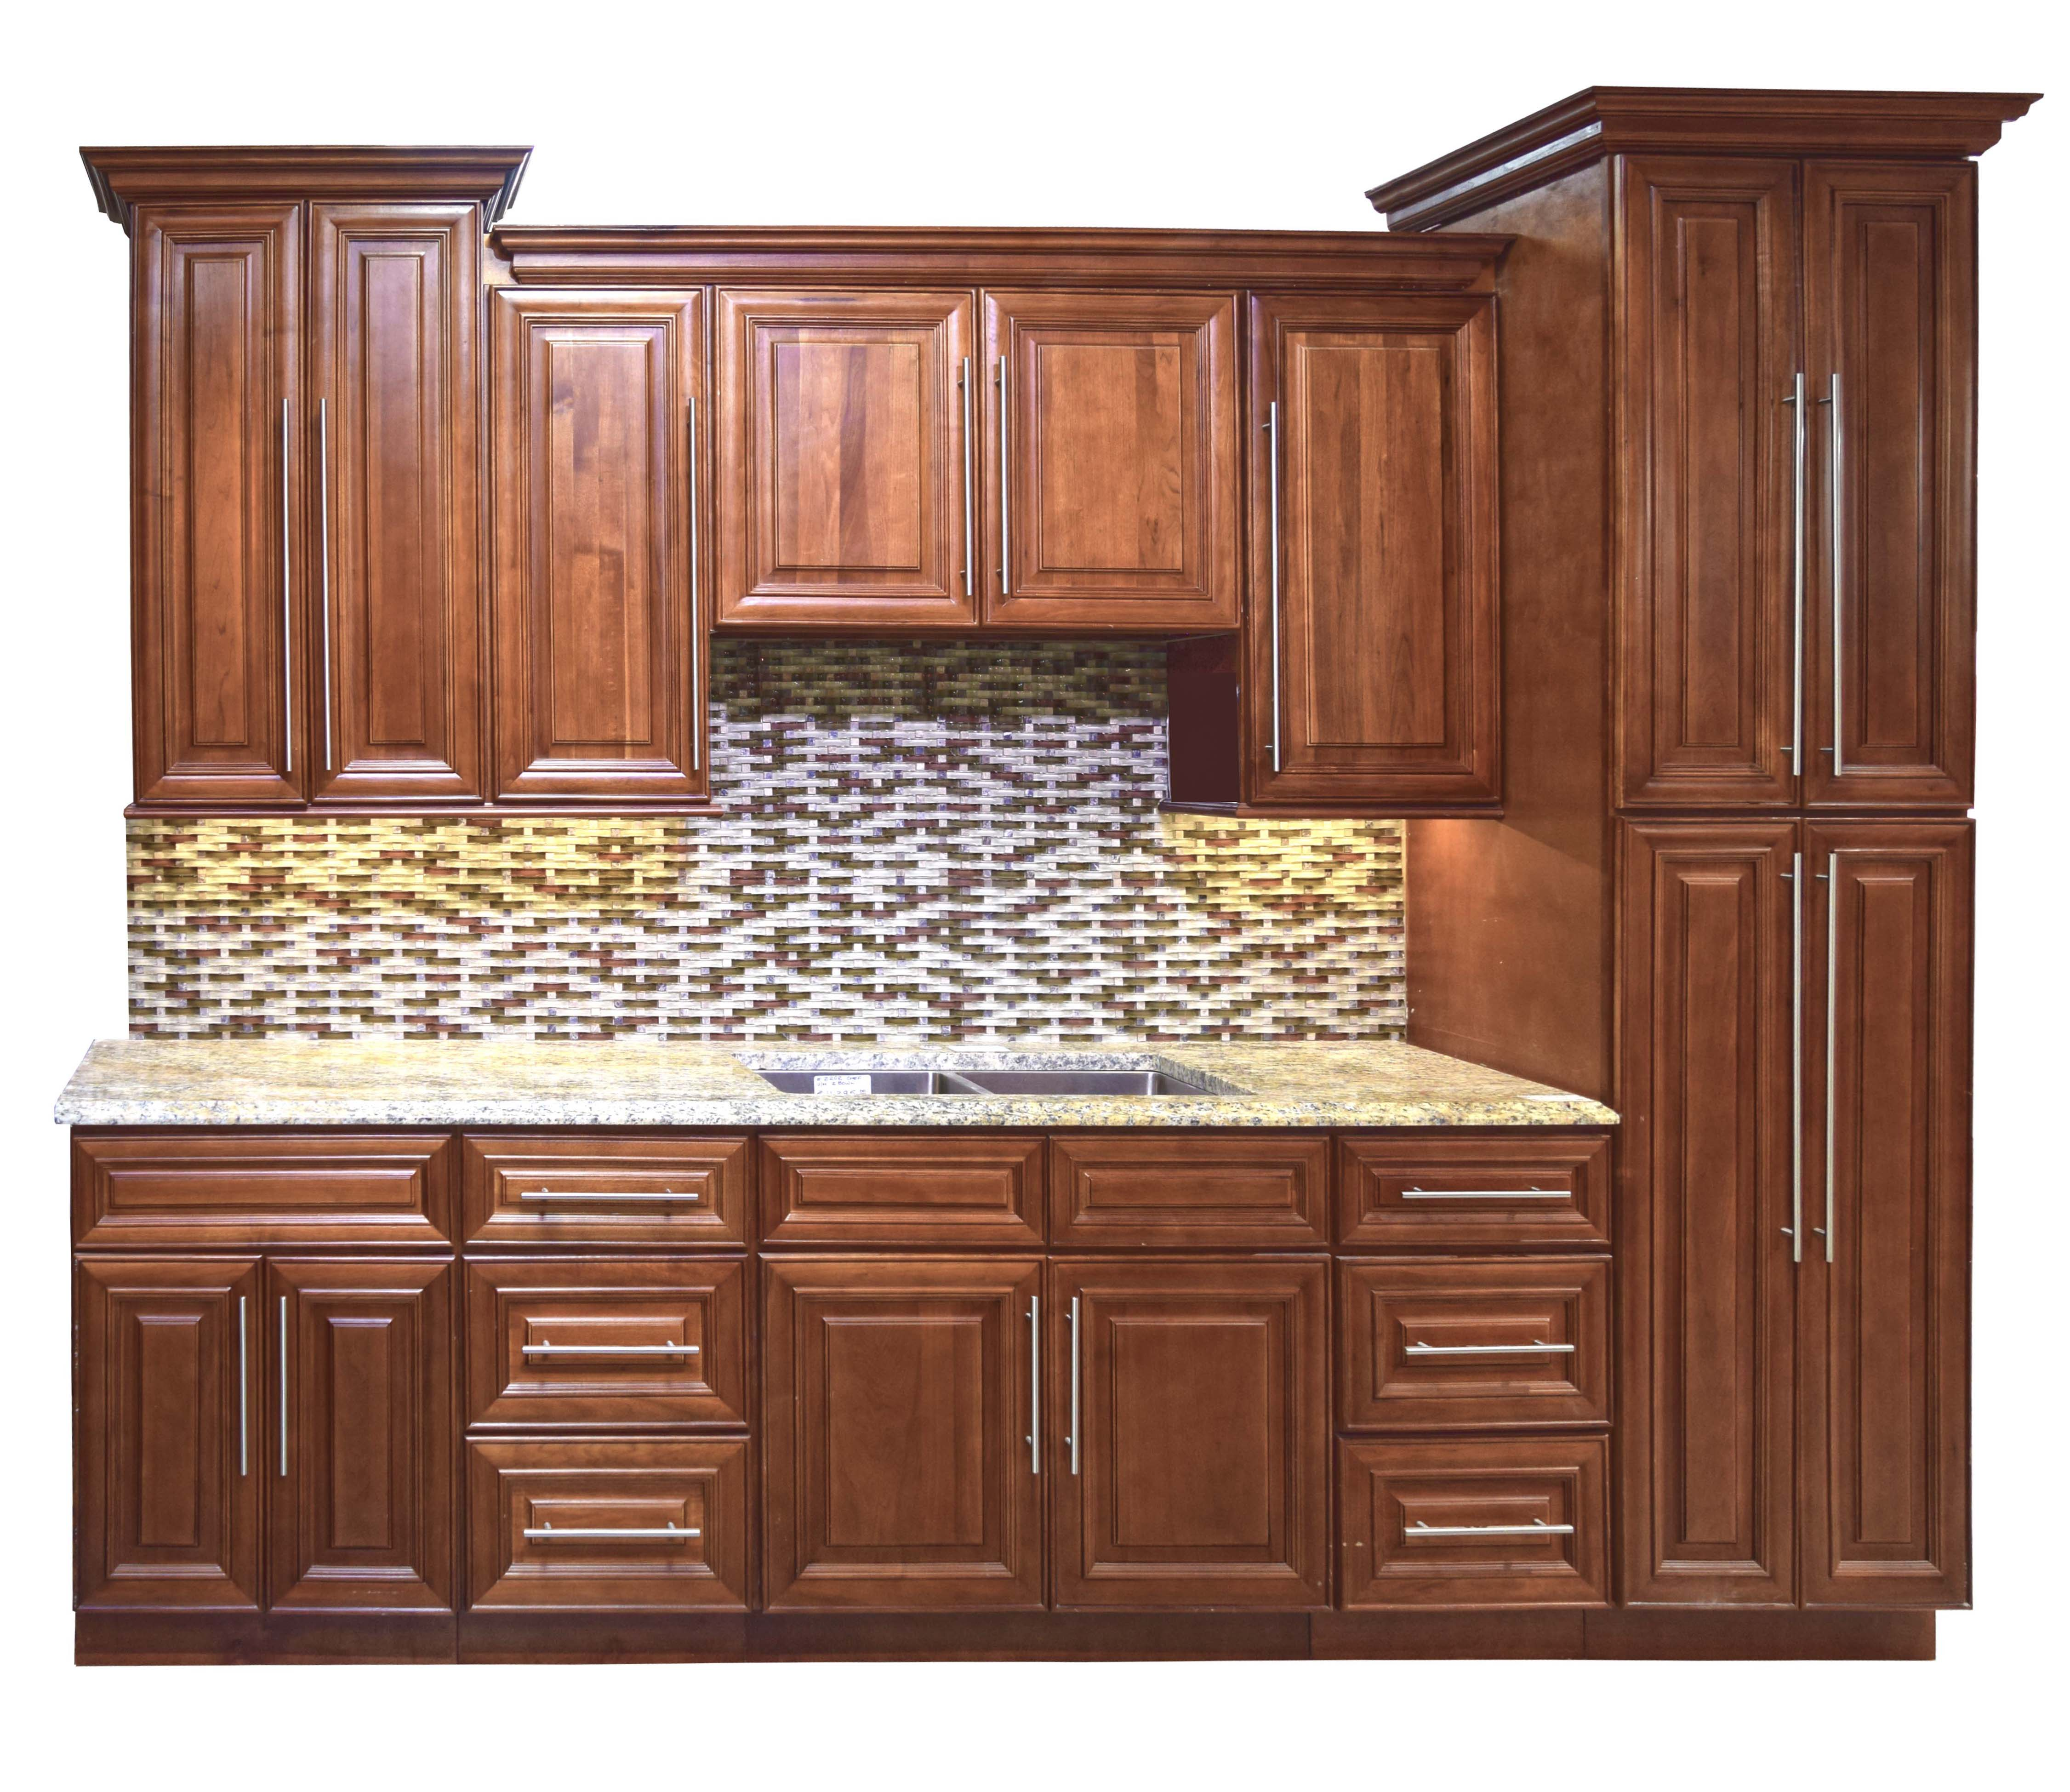 Imported Wooden Kitchen Cabinetry York Collection The Roopnarine Showroom In Trinidad The